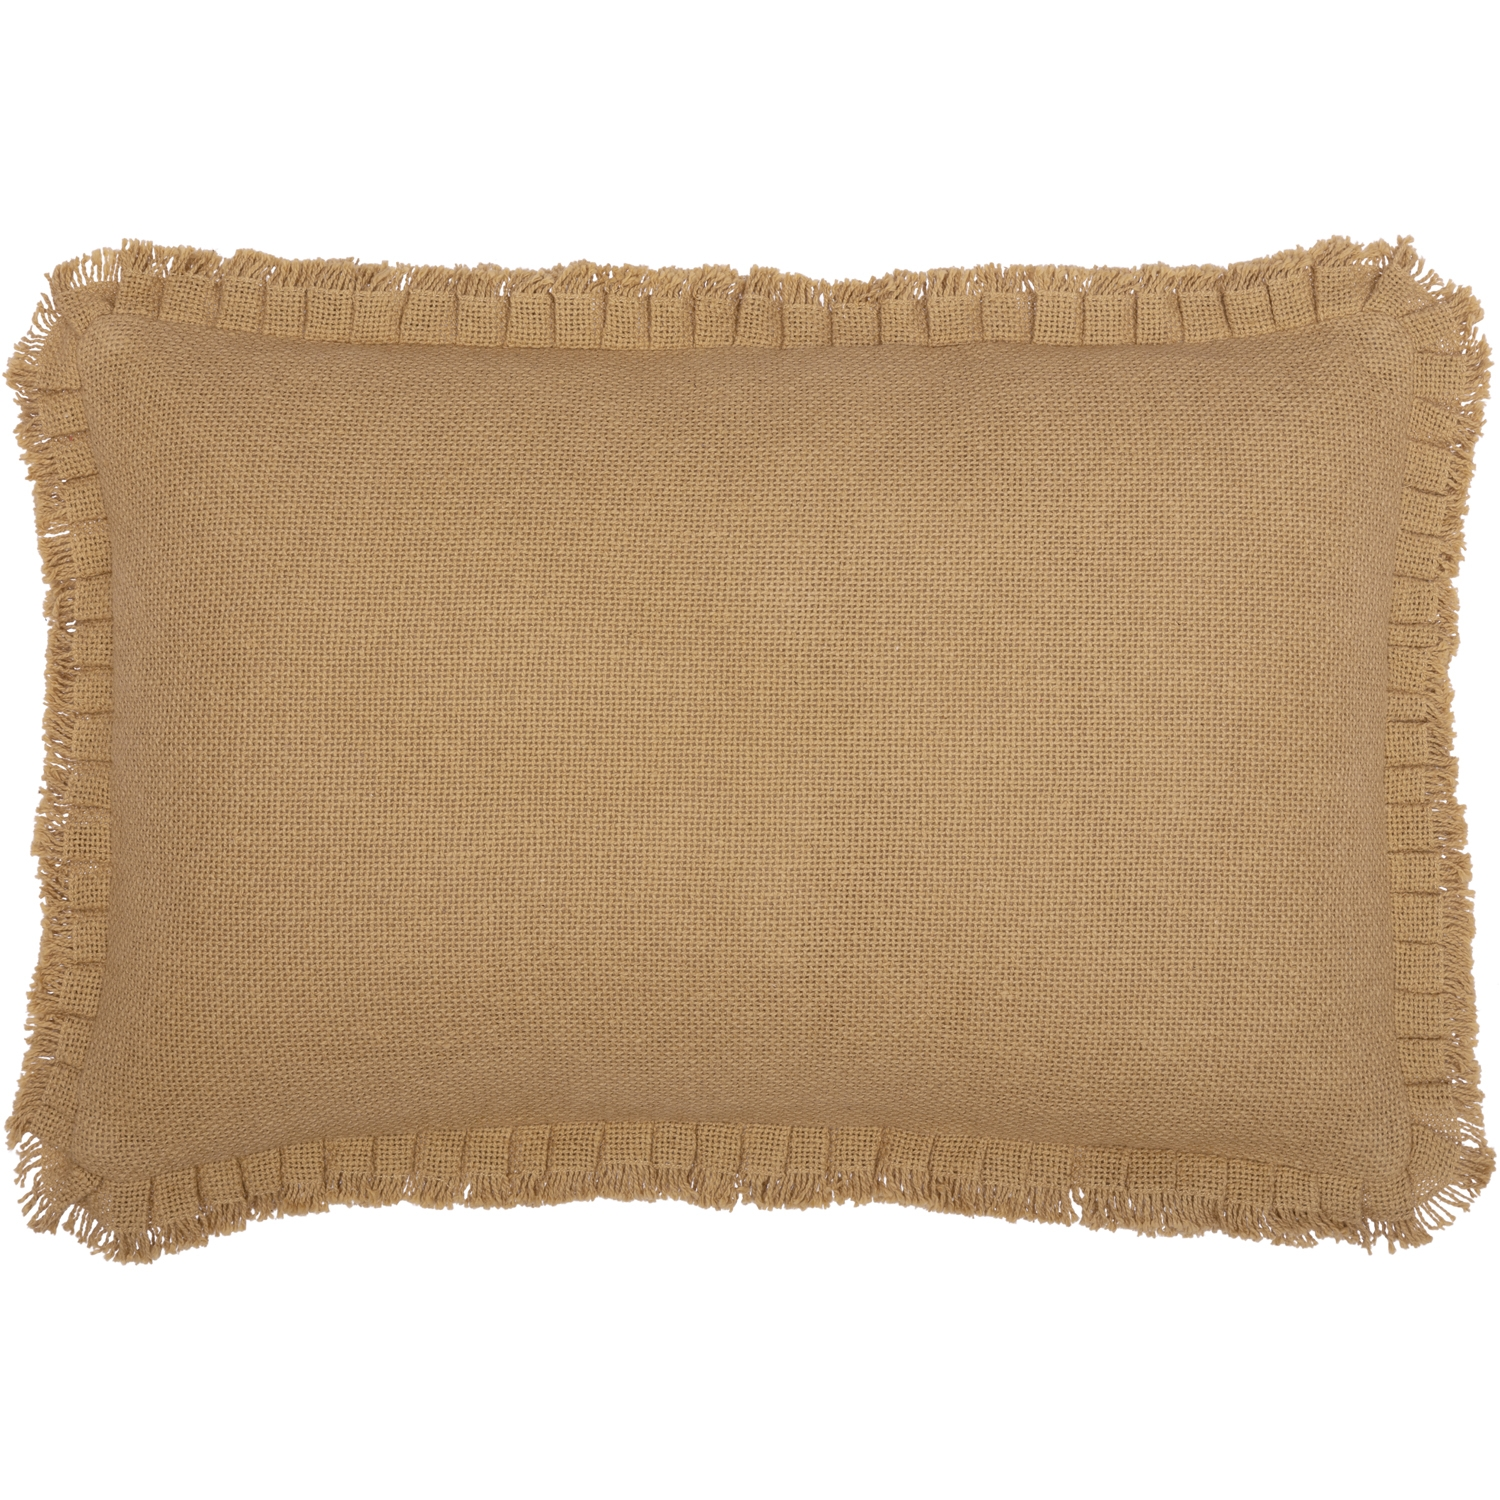 Burlap Natural Pillow w/ Fringed Ruffle 14x22